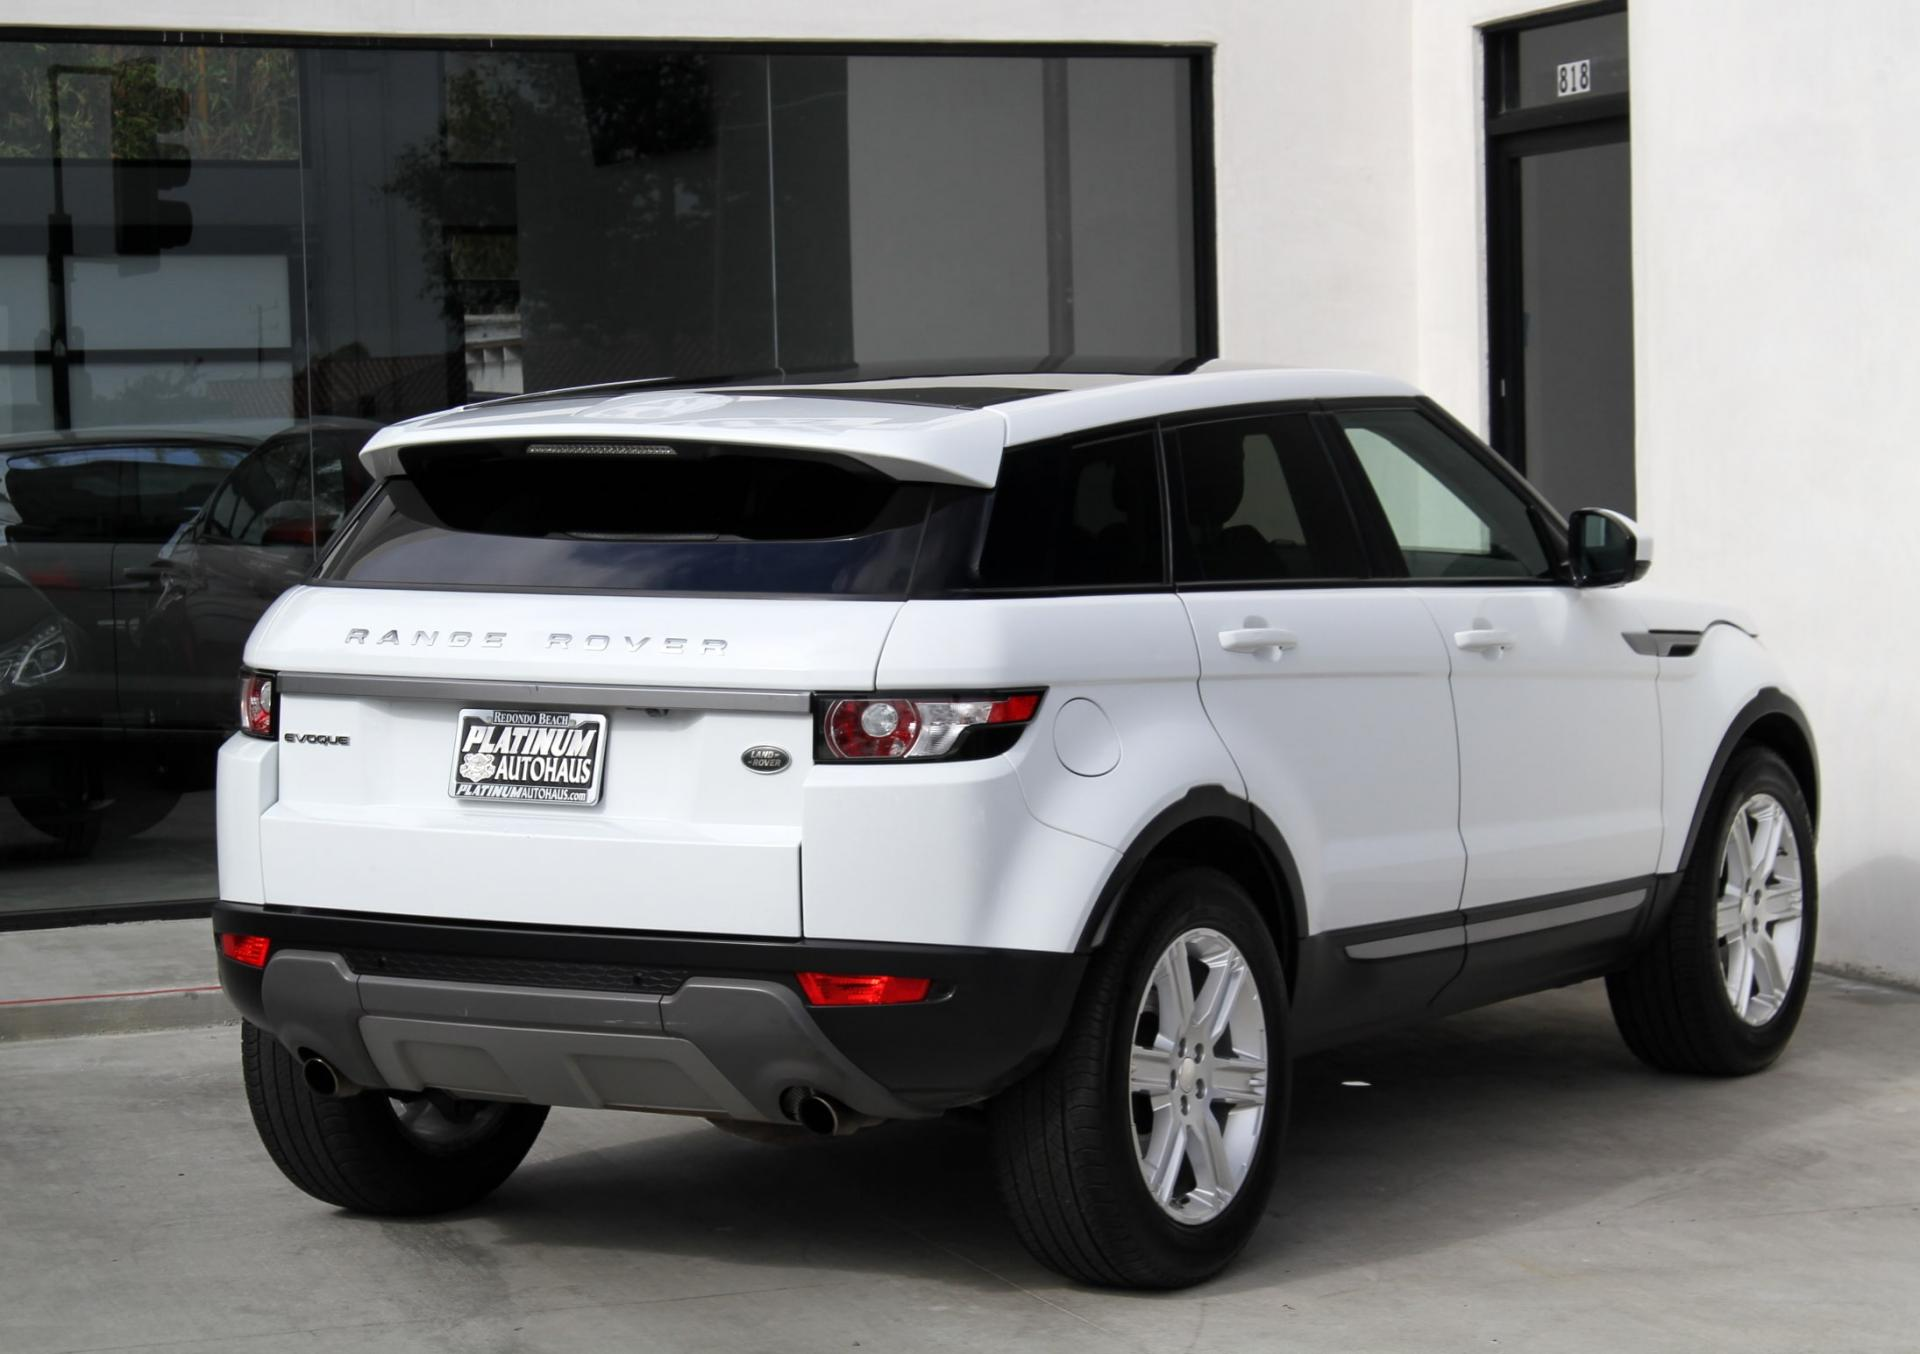 2014 land rover range rover evoque pure plus stock 5881 for sale near redondo beach ca ca - Land rover garage near me ...